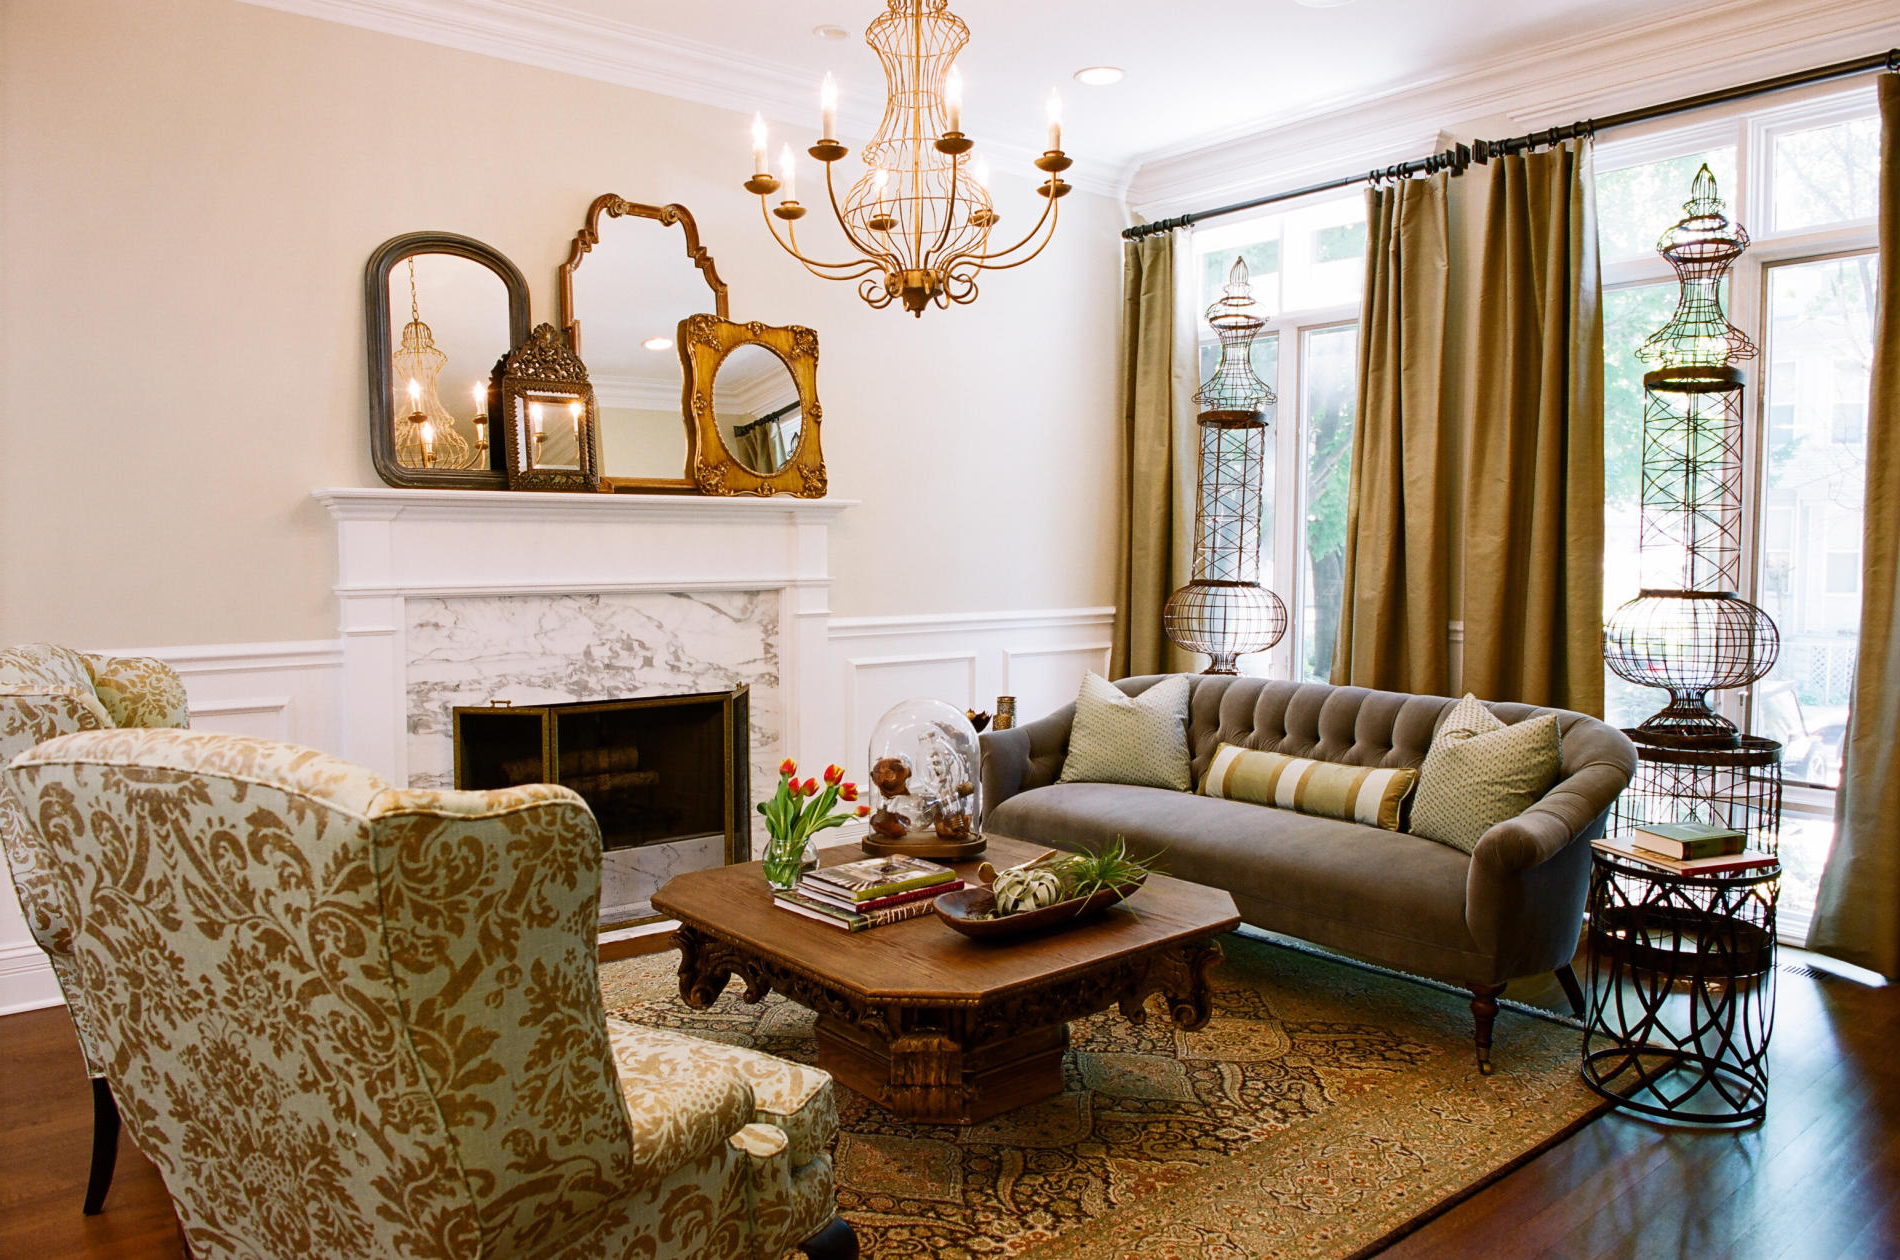 Basic styles of interior designing part 2 my decorative for Living room design styles